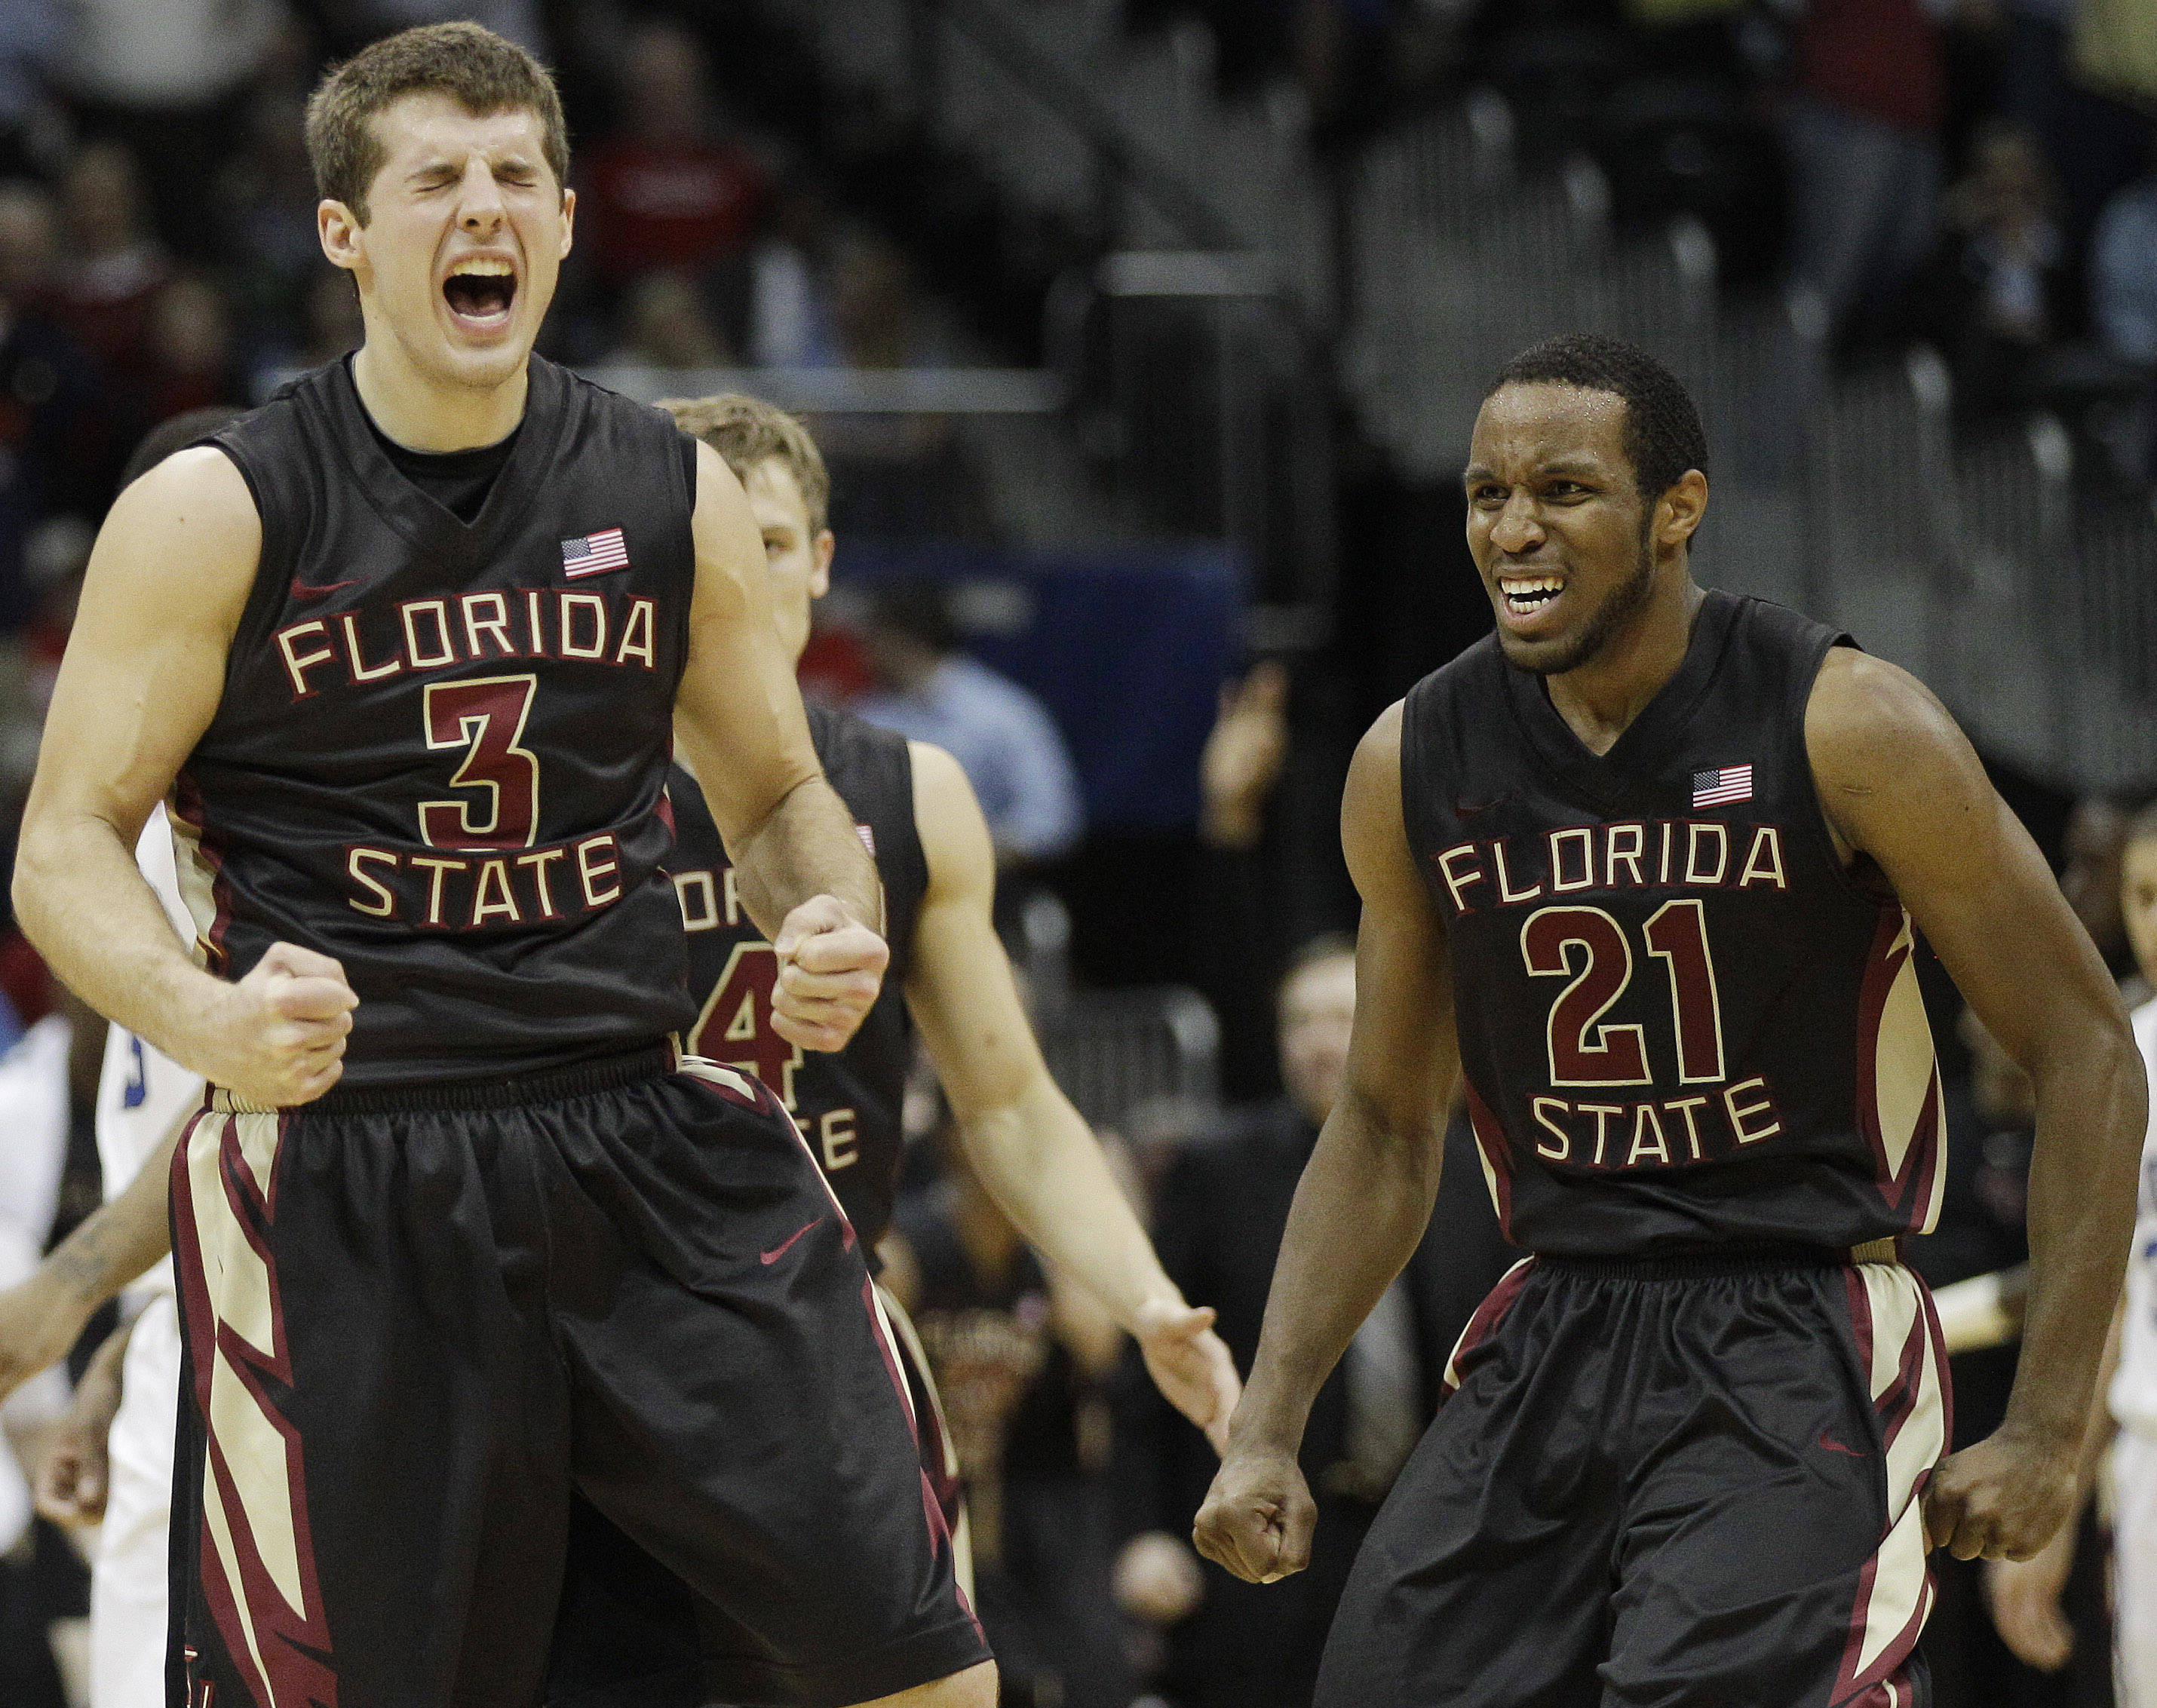 Florida State guard Luke Loucks (3) and guard Michael Snaer (21) after Loucks made the last basket of the game against Duke late in the second half of an NCAA college basketball game in the semifinals of the Atlantic Coast Conference tournament, Saturday, March 10, 2012, in Atlanta. Florida State won 62-59. (AP Photo/Chuck Burton)